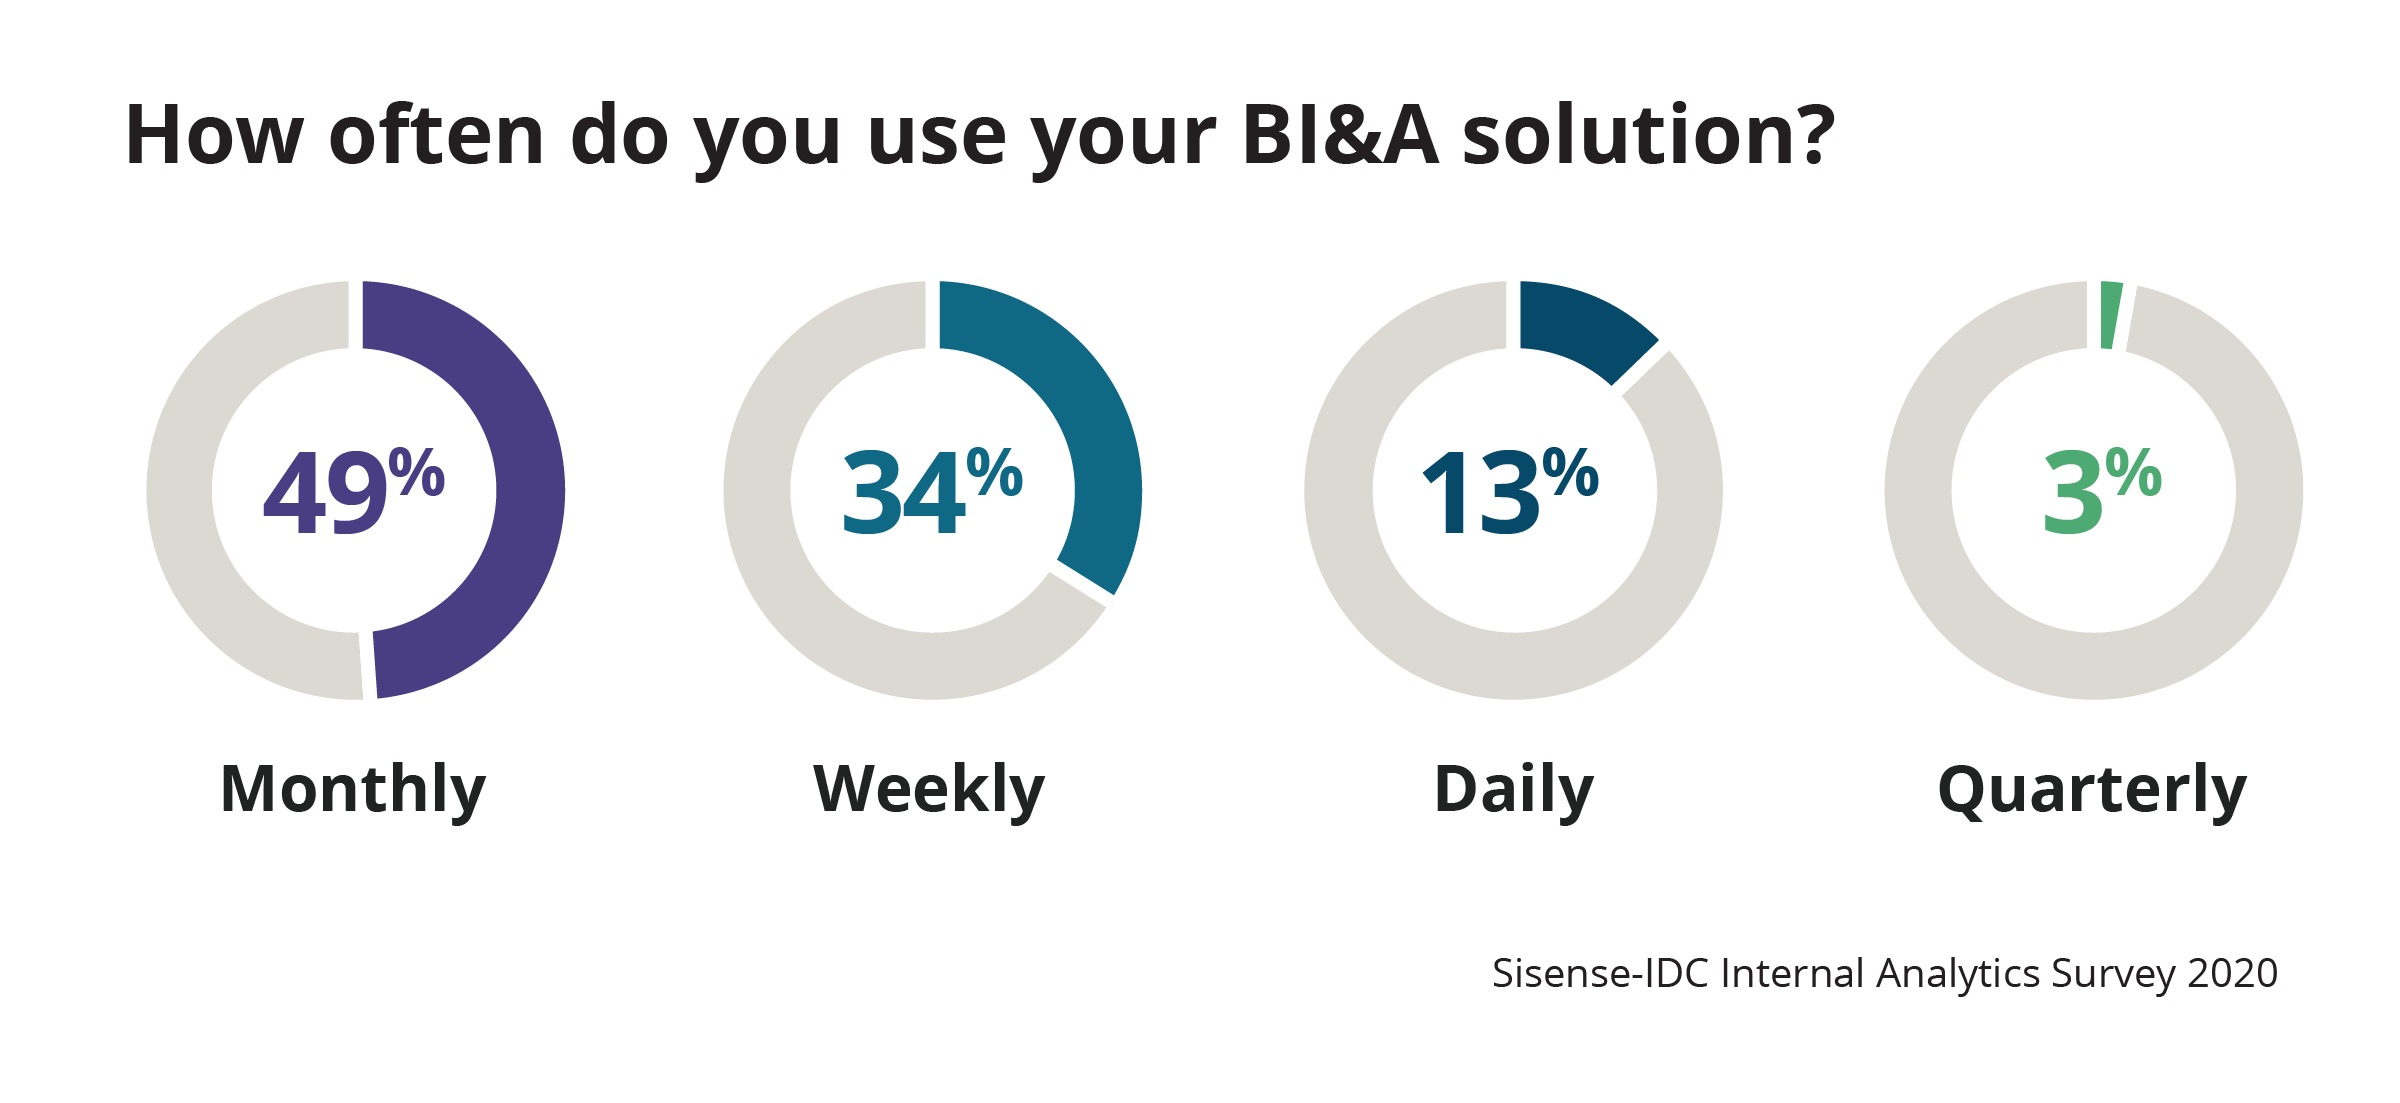 How often do you use your BI&A solution?